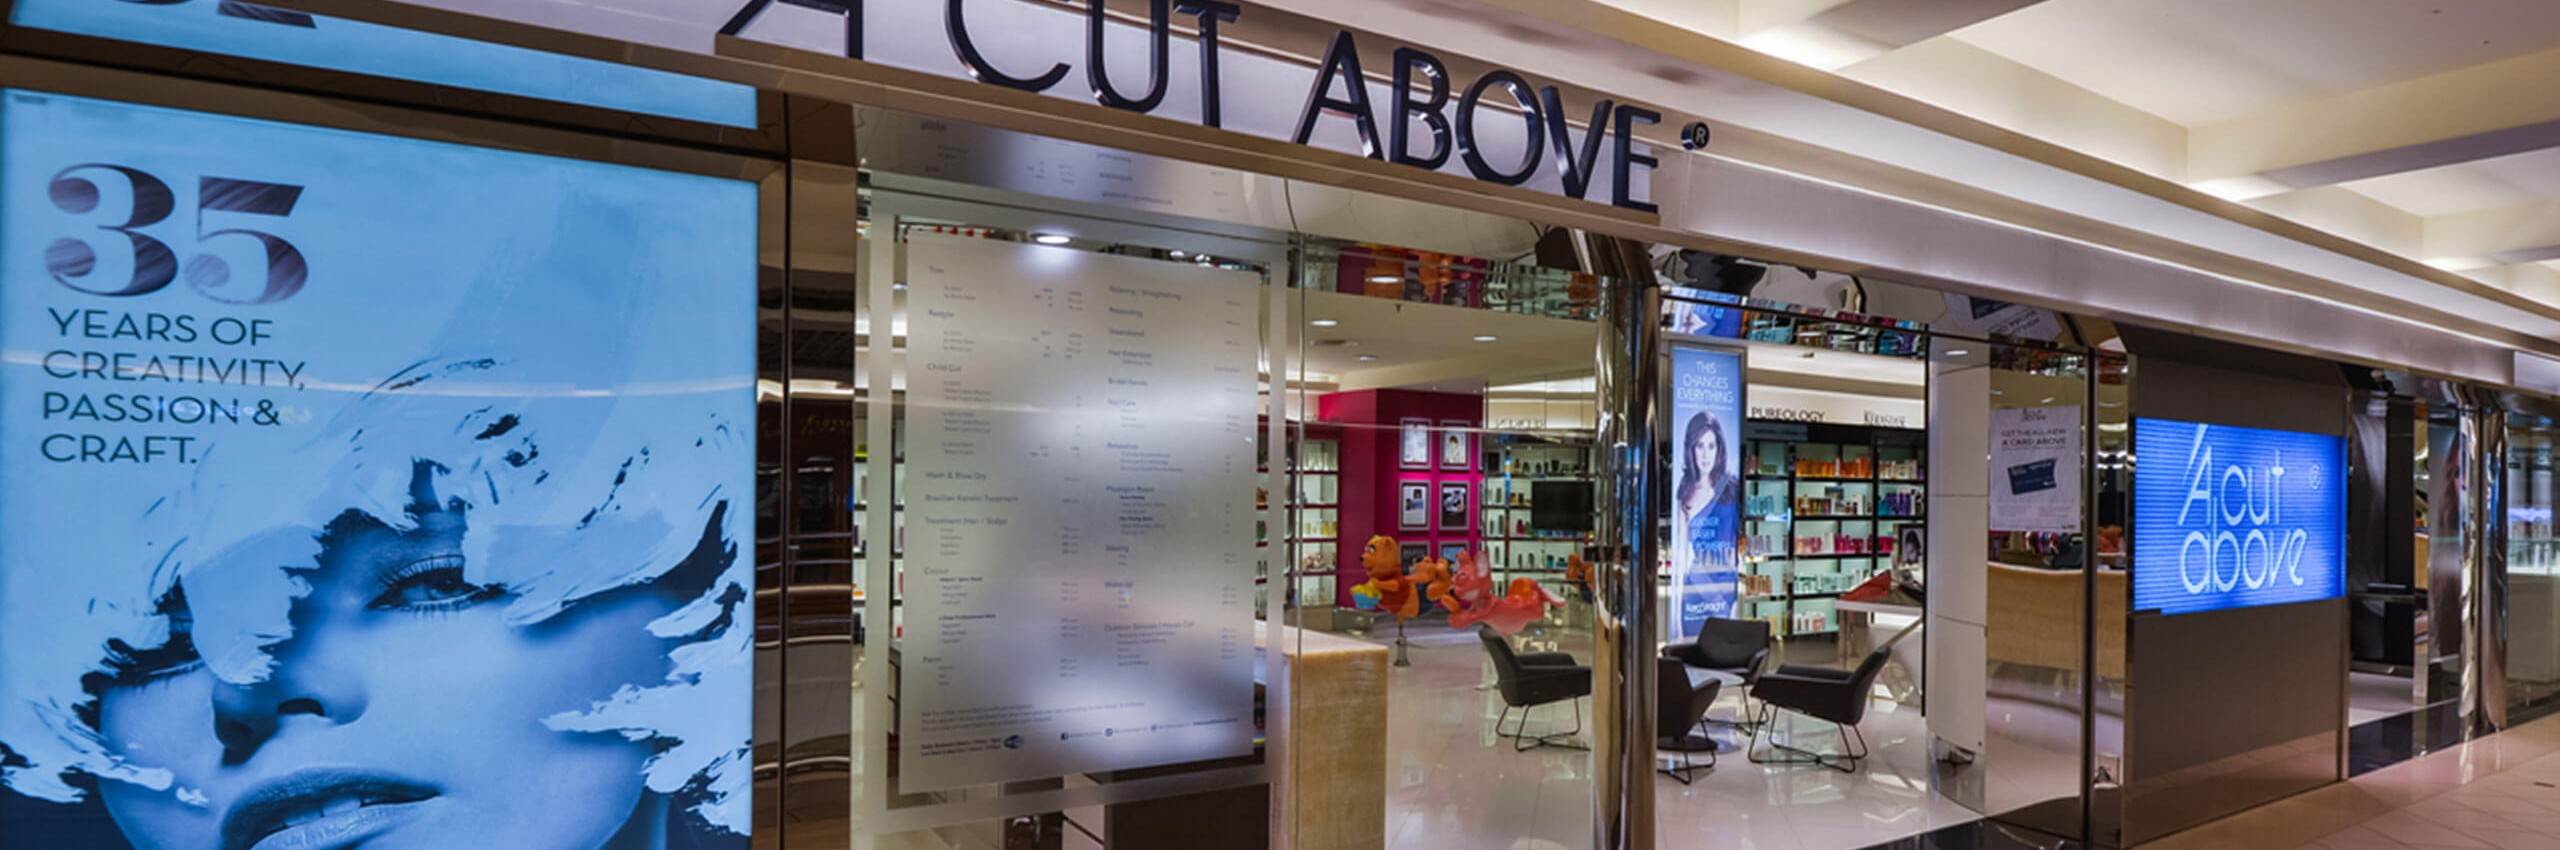 Contact for a cut above hair salon malaysia a cut above for A cut above beauty salon